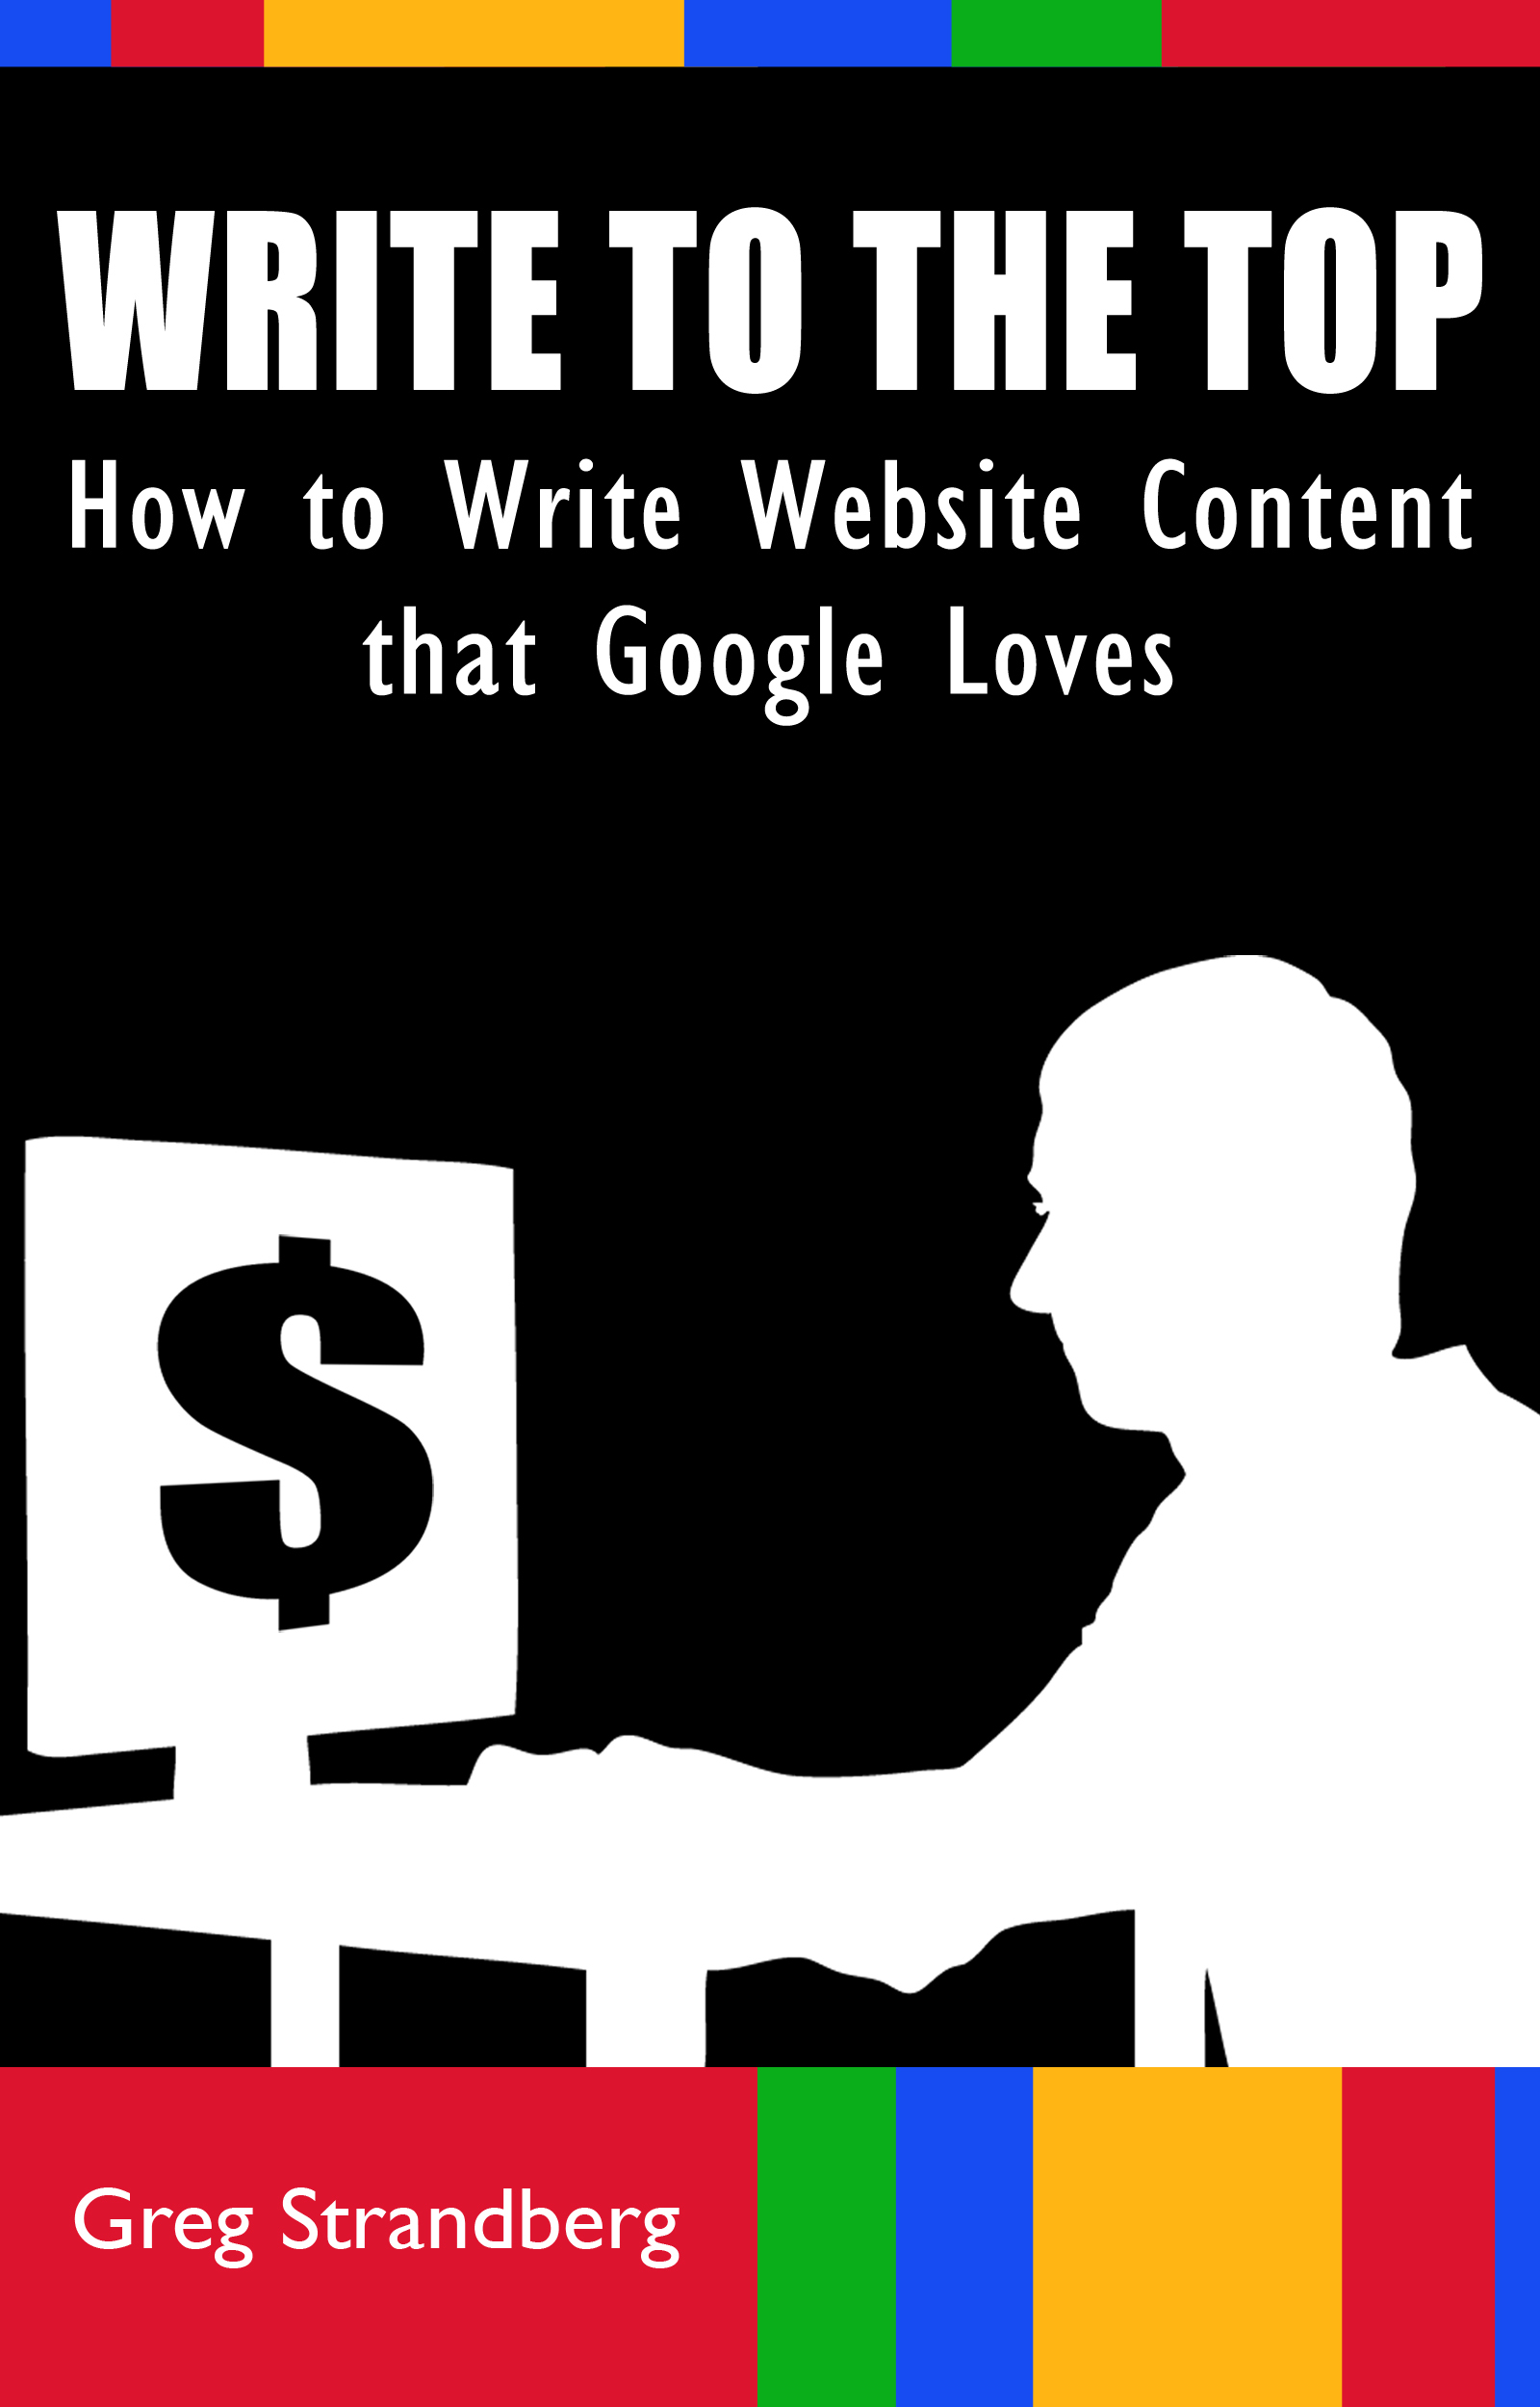 Write to the Top: How to Write Website Content that Google Loves